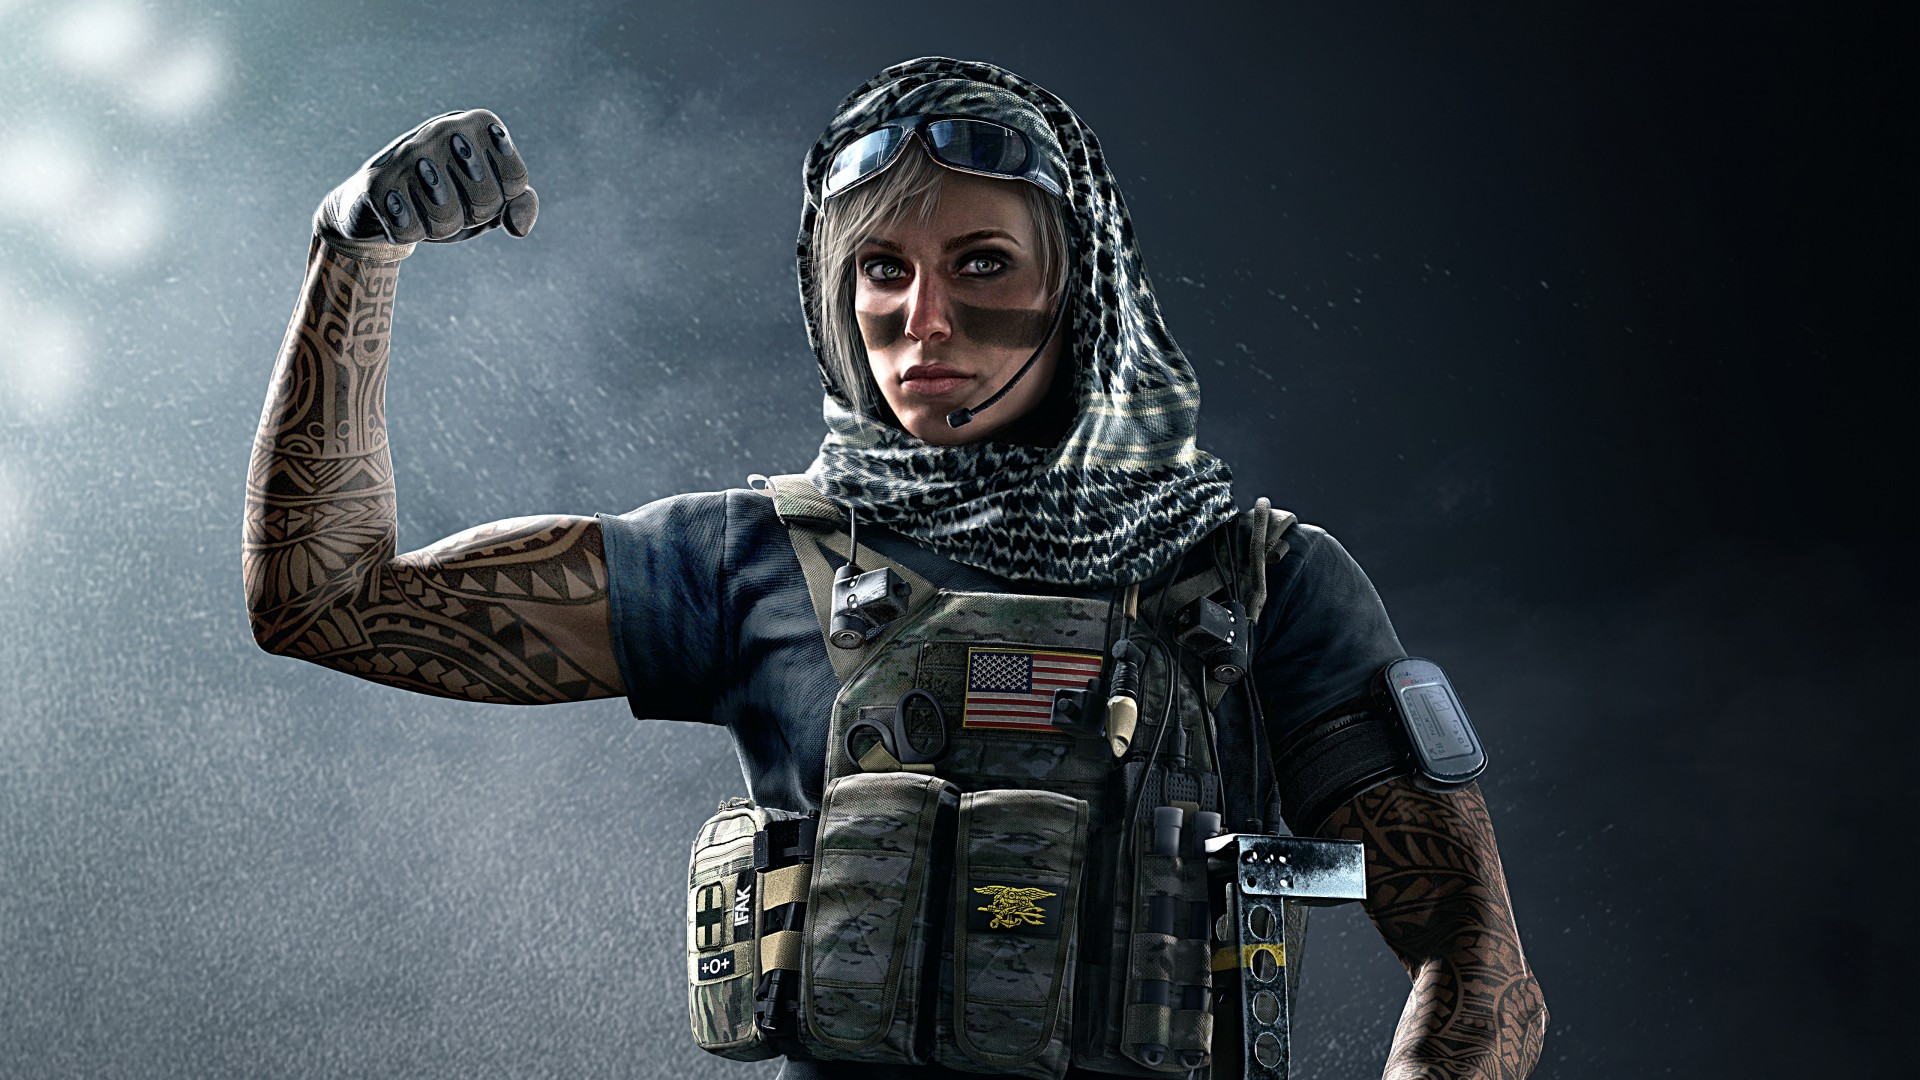 Rainbow Six Tom Clancy 39s Rainbow Six Siege Wallpapers Pictures Images